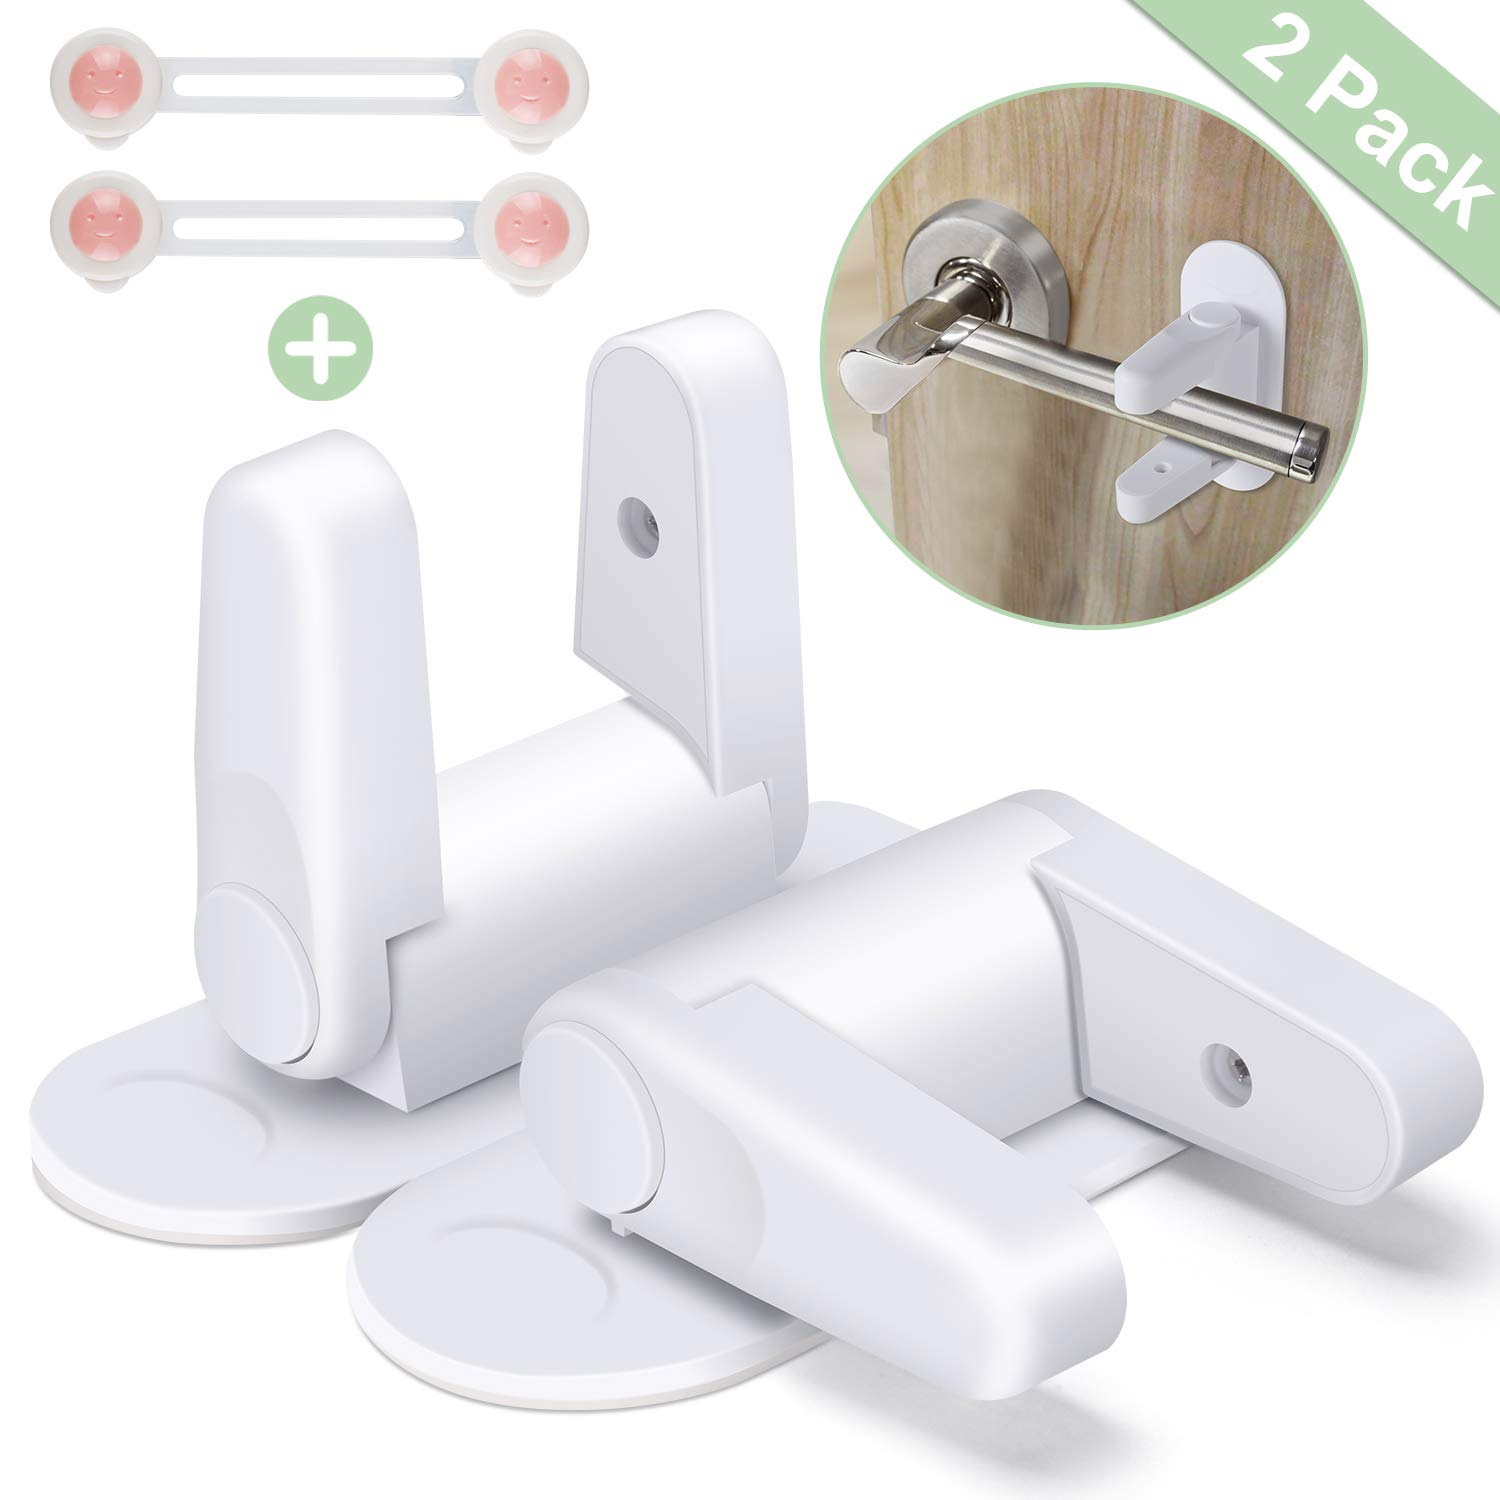 Door Lever Locks Upgraded Baby & Child Safety Locks Child Baby Proof Safety Lock Baby Proofing Kit with 3M Adhesive Tape (2 Pack)